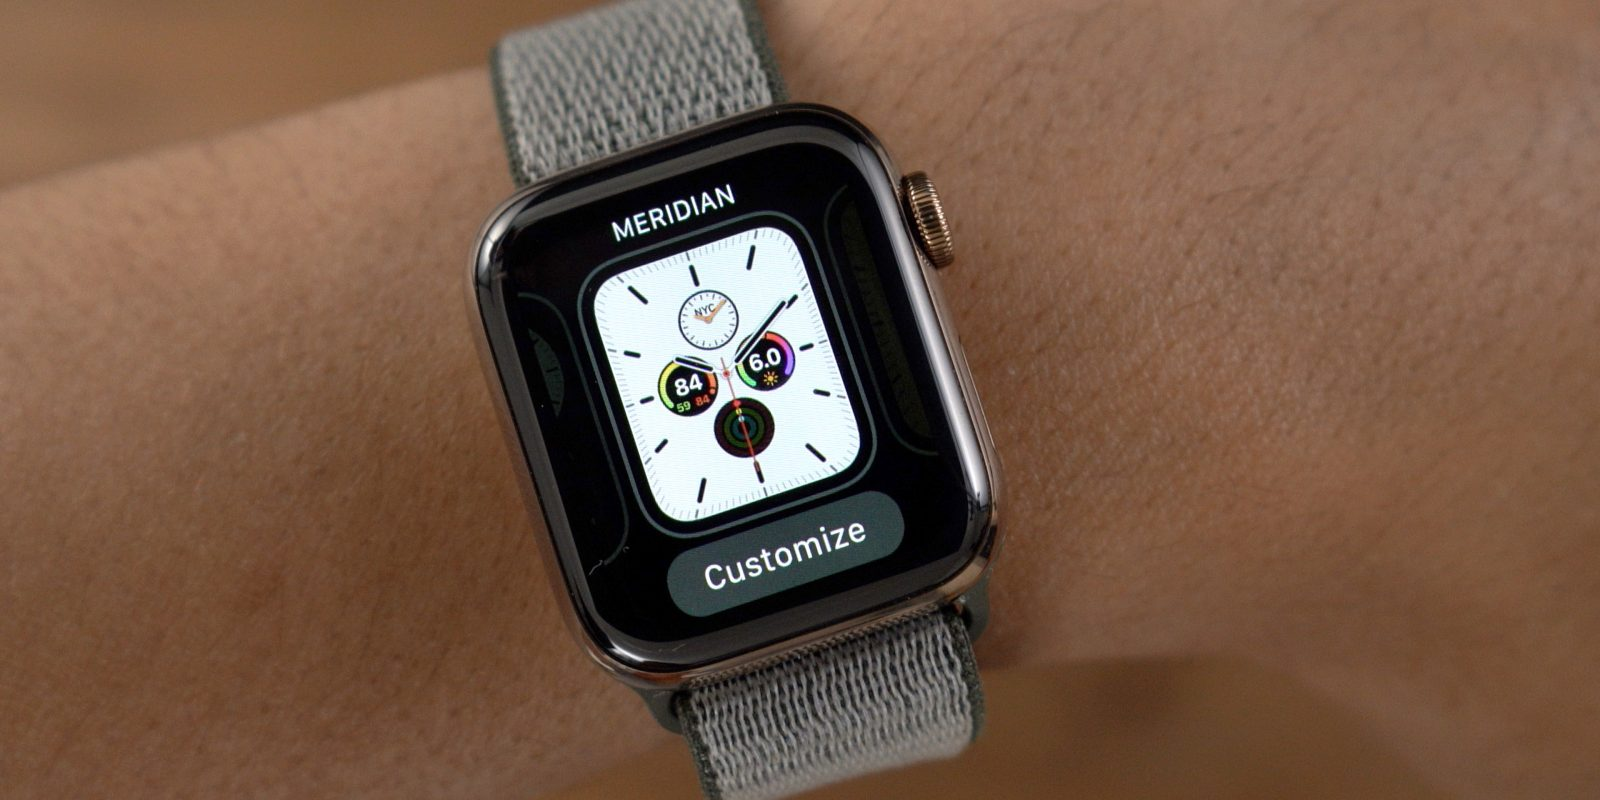 7 out of 10 Apple Watch customers are first time buyers, not upgraders